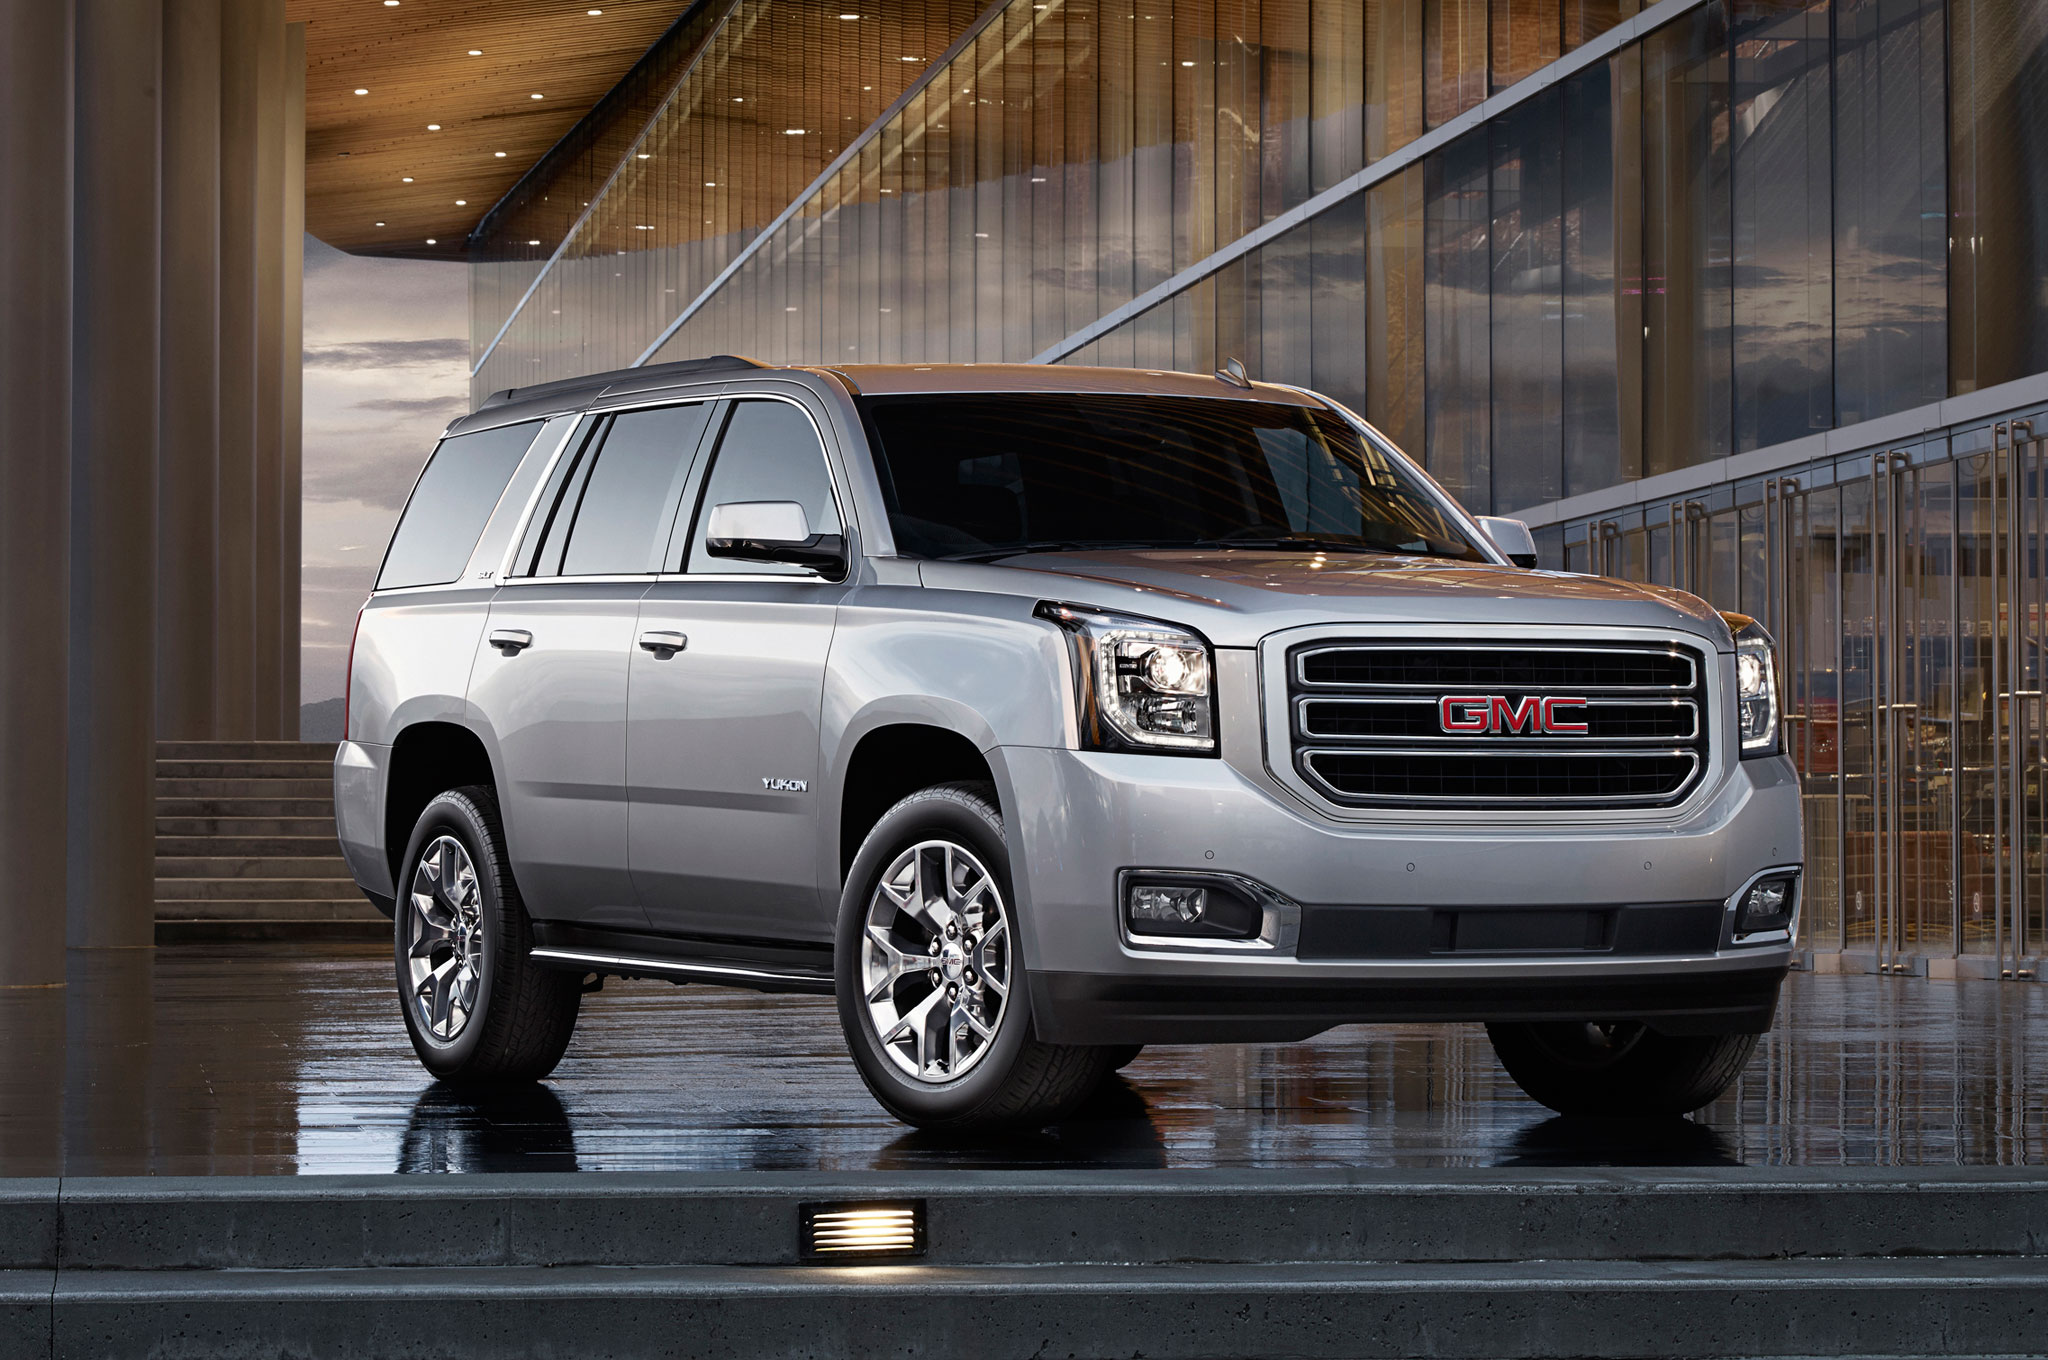 2016 gmc yukon slt premium gets the denali styling treatment. Black Bedroom Furniture Sets. Home Design Ideas